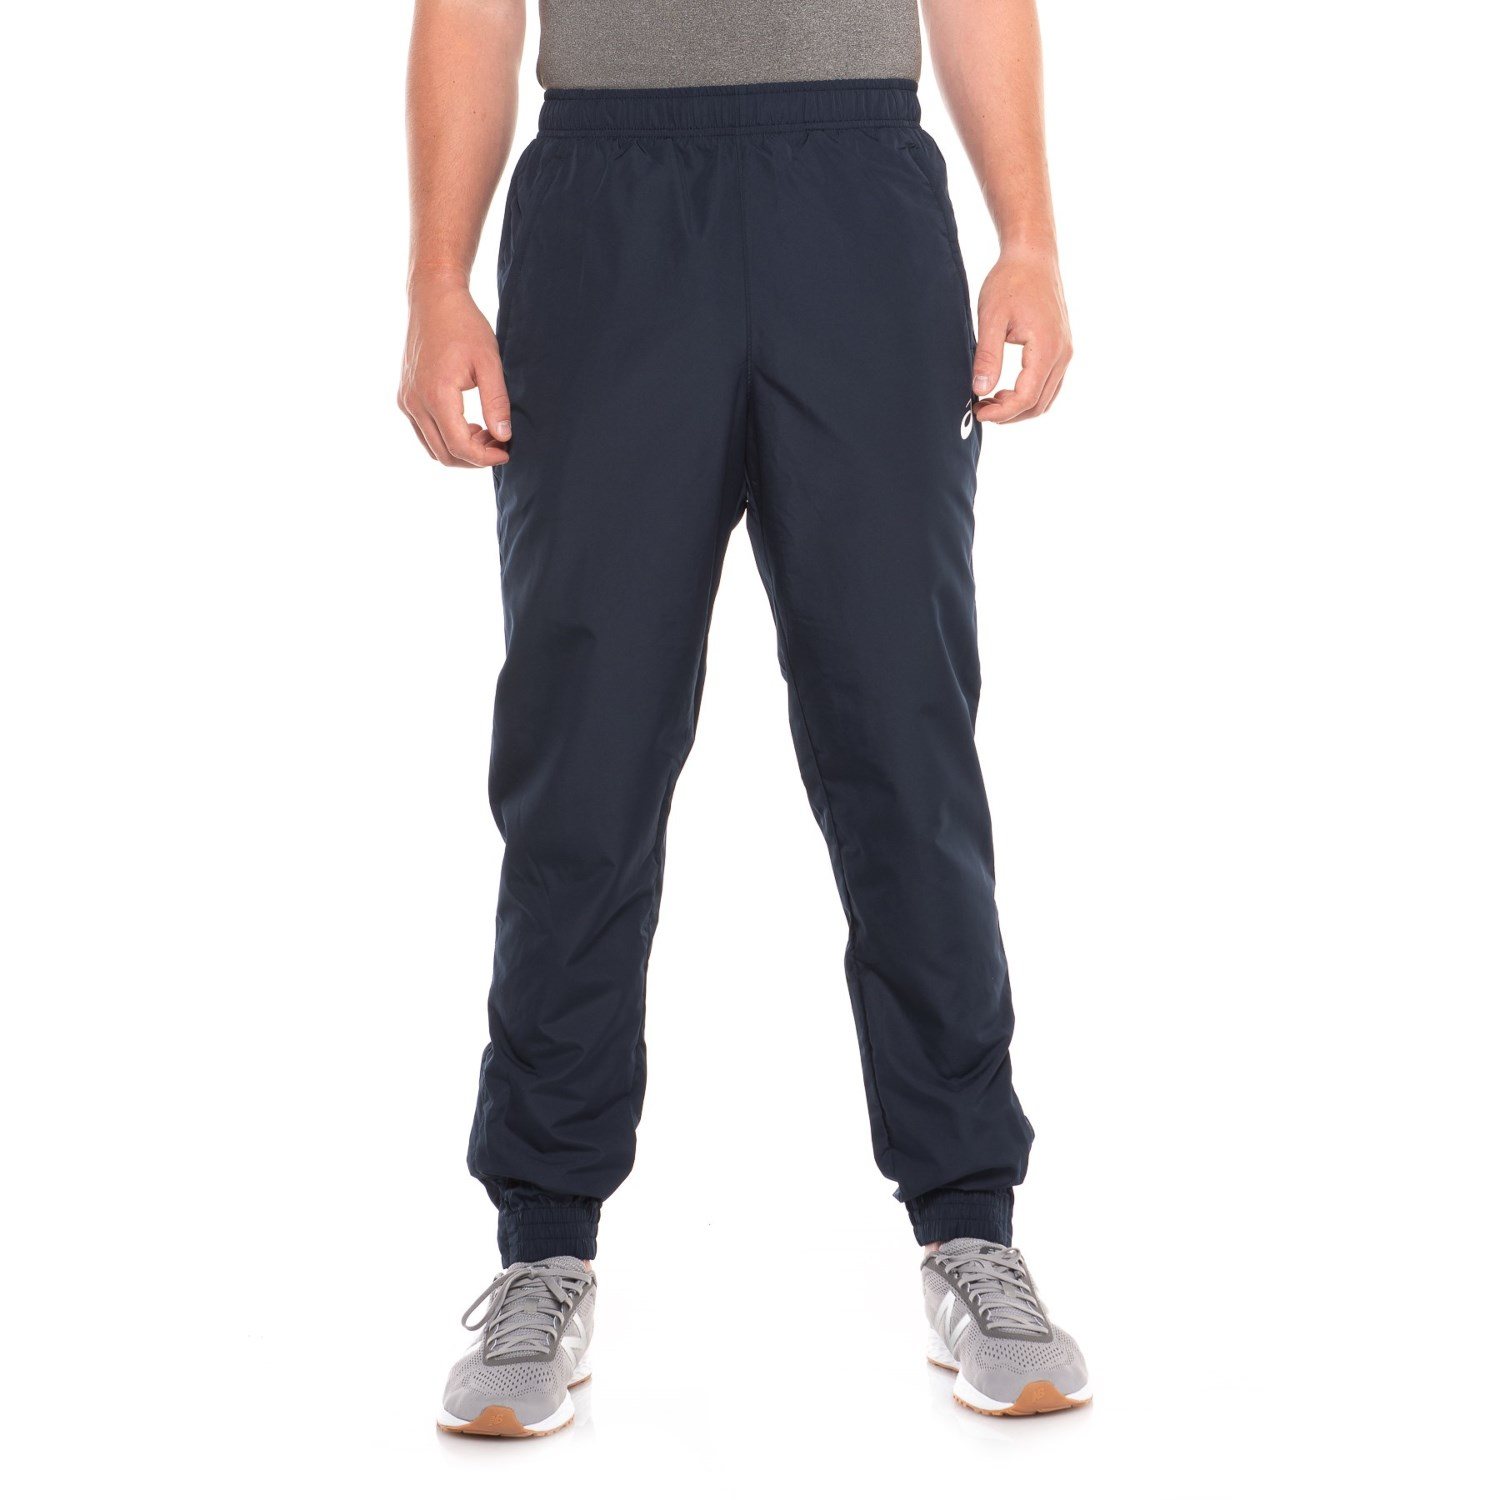 ASICS Men's Upsurge Warm-Up Running Pants